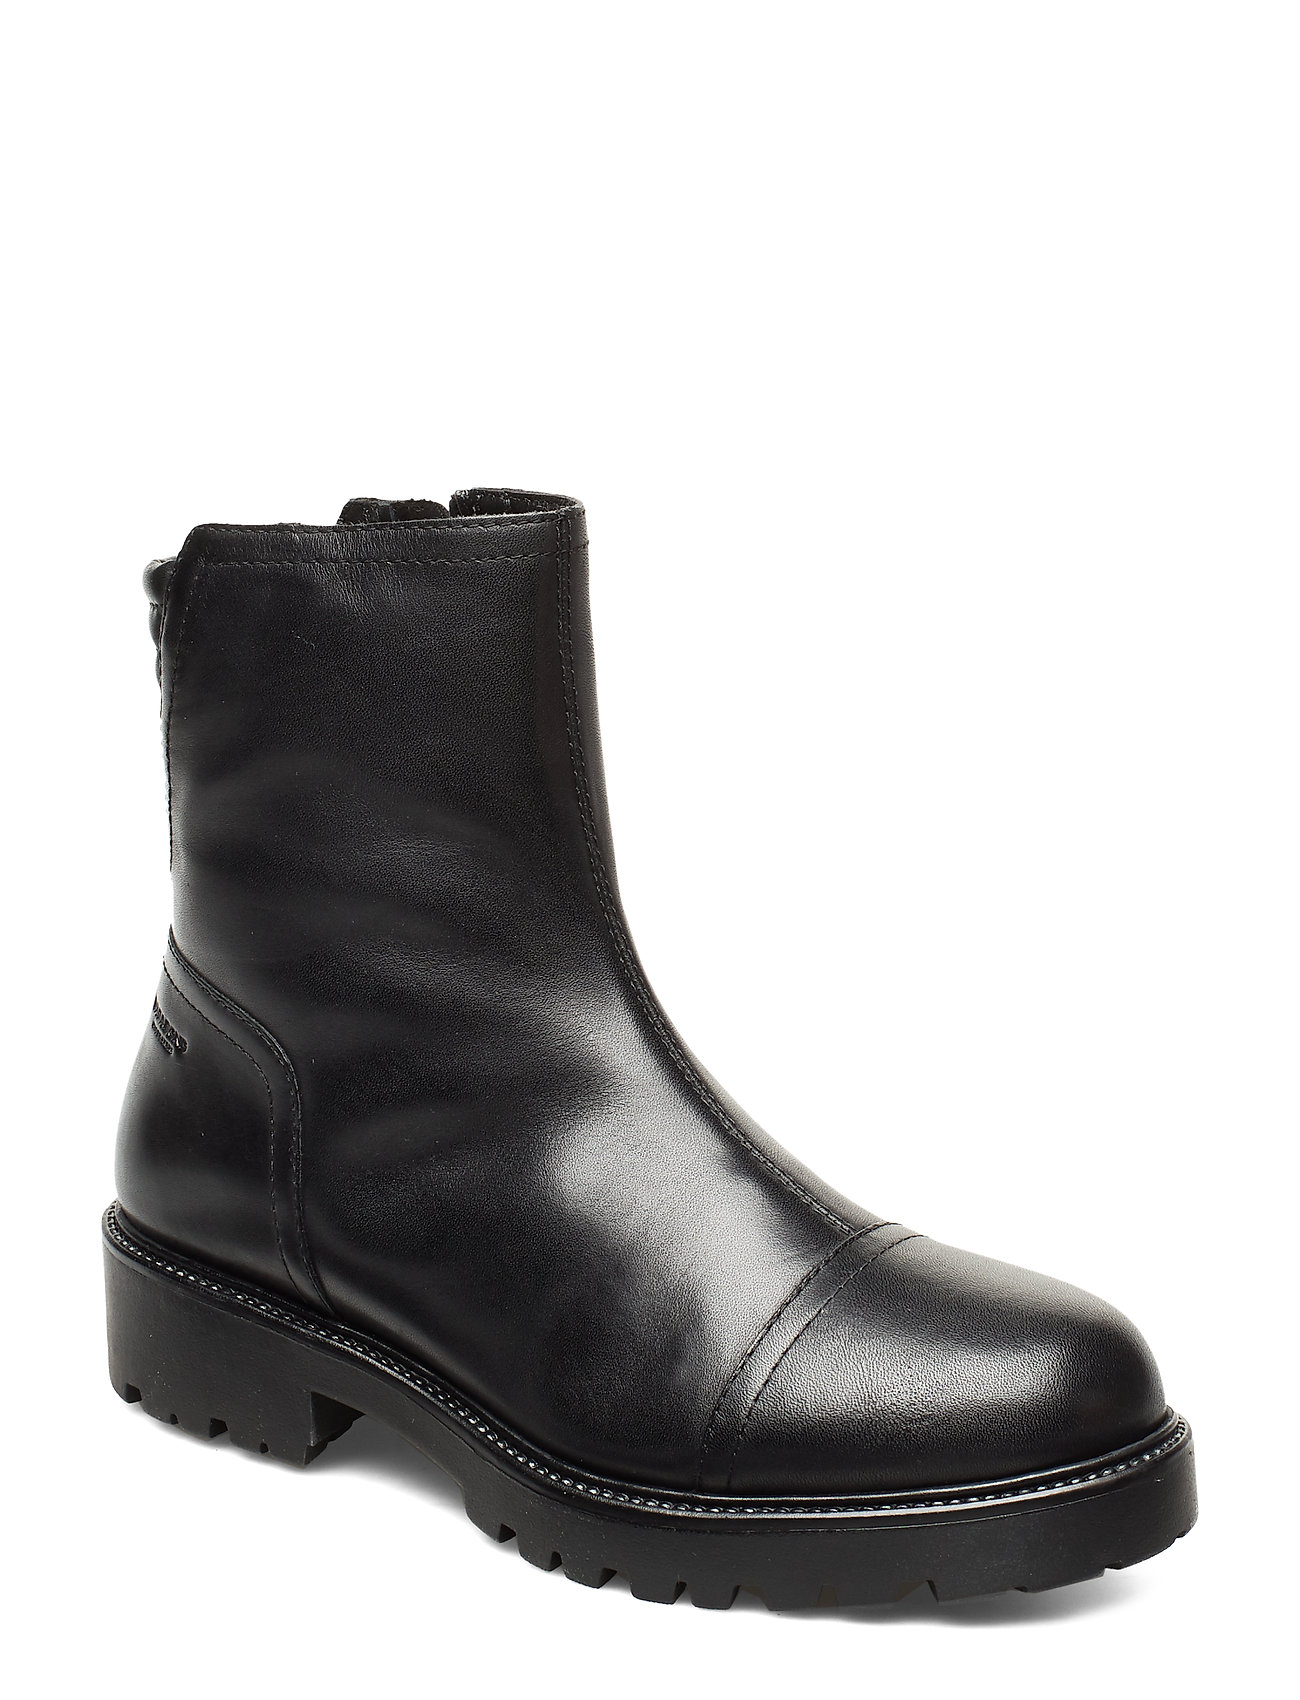 Image of Kenova Shoes Boots Ankle Boots Ankle Boots Flat Heel Sort VAGABOND (3239058493)